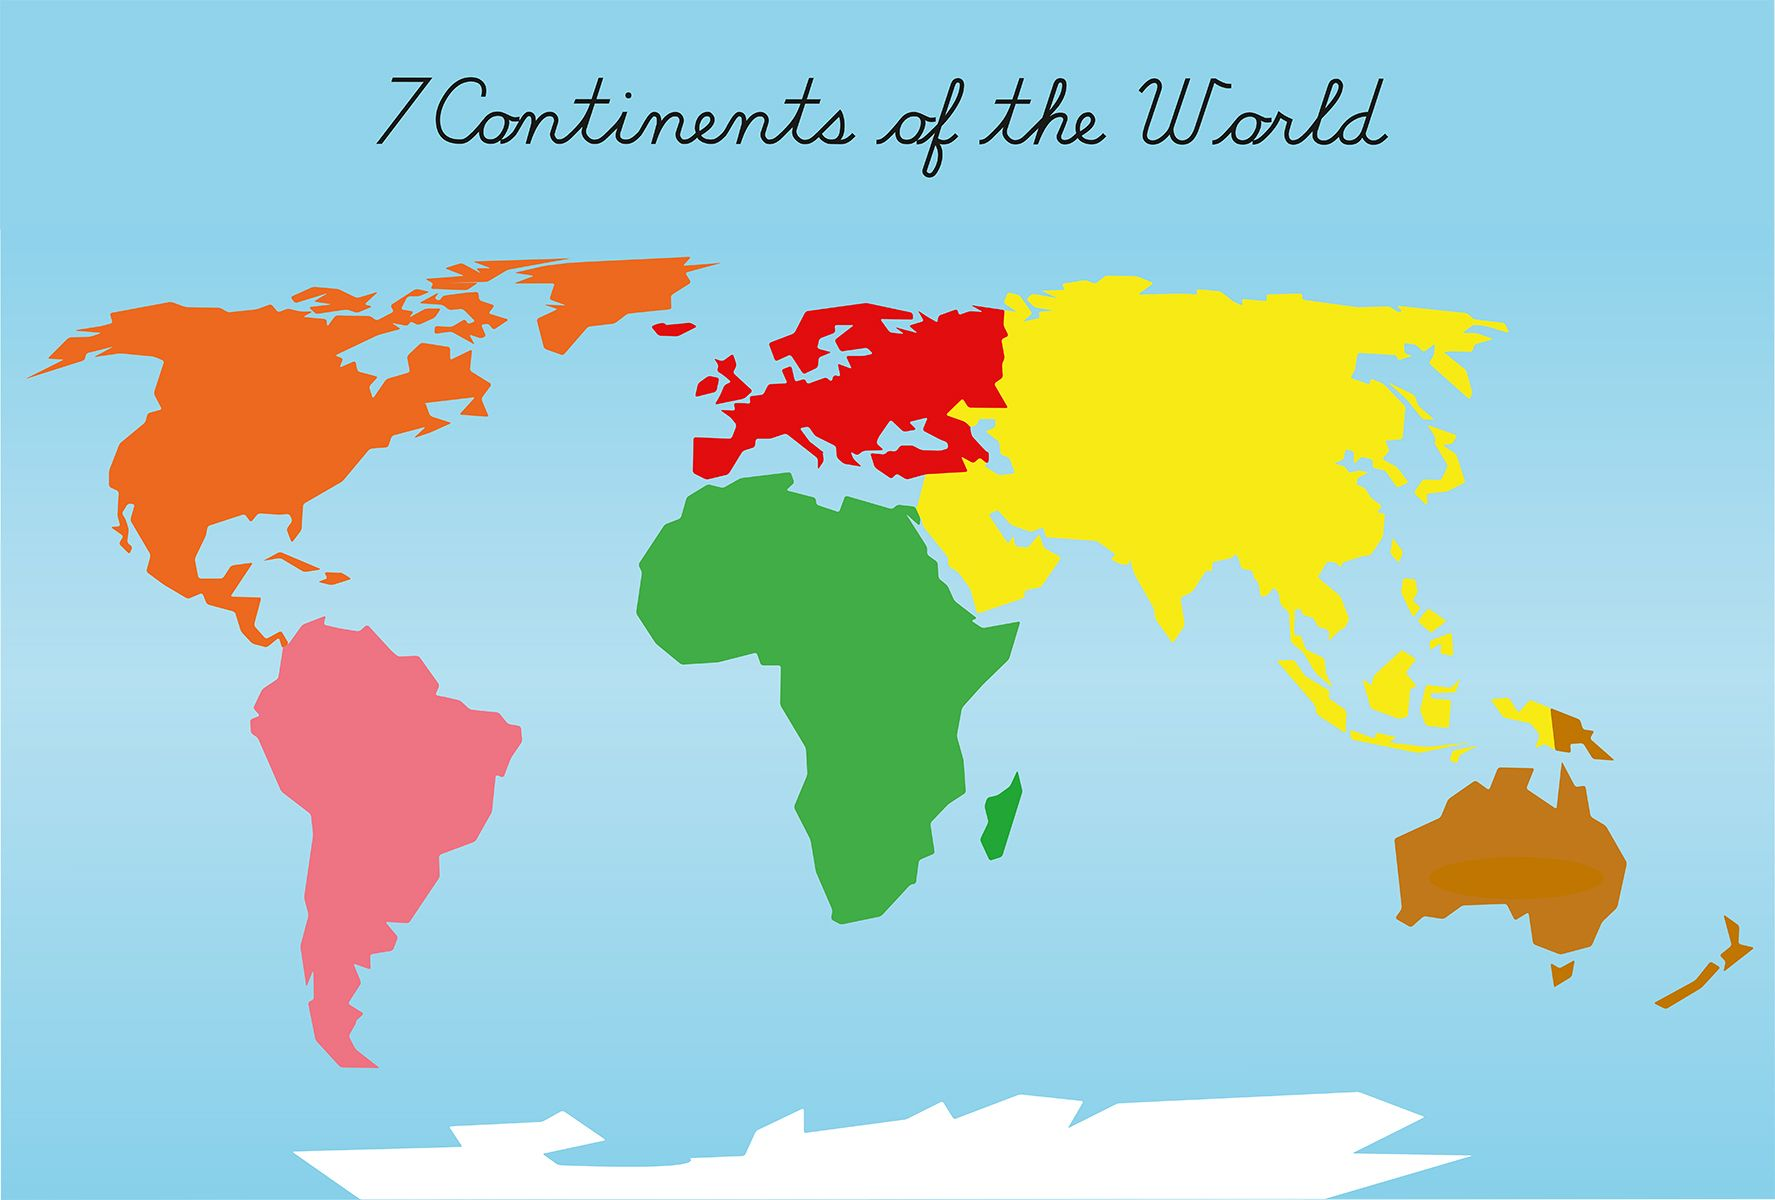 It's just a photo of Sassy Printable Maps of Continents